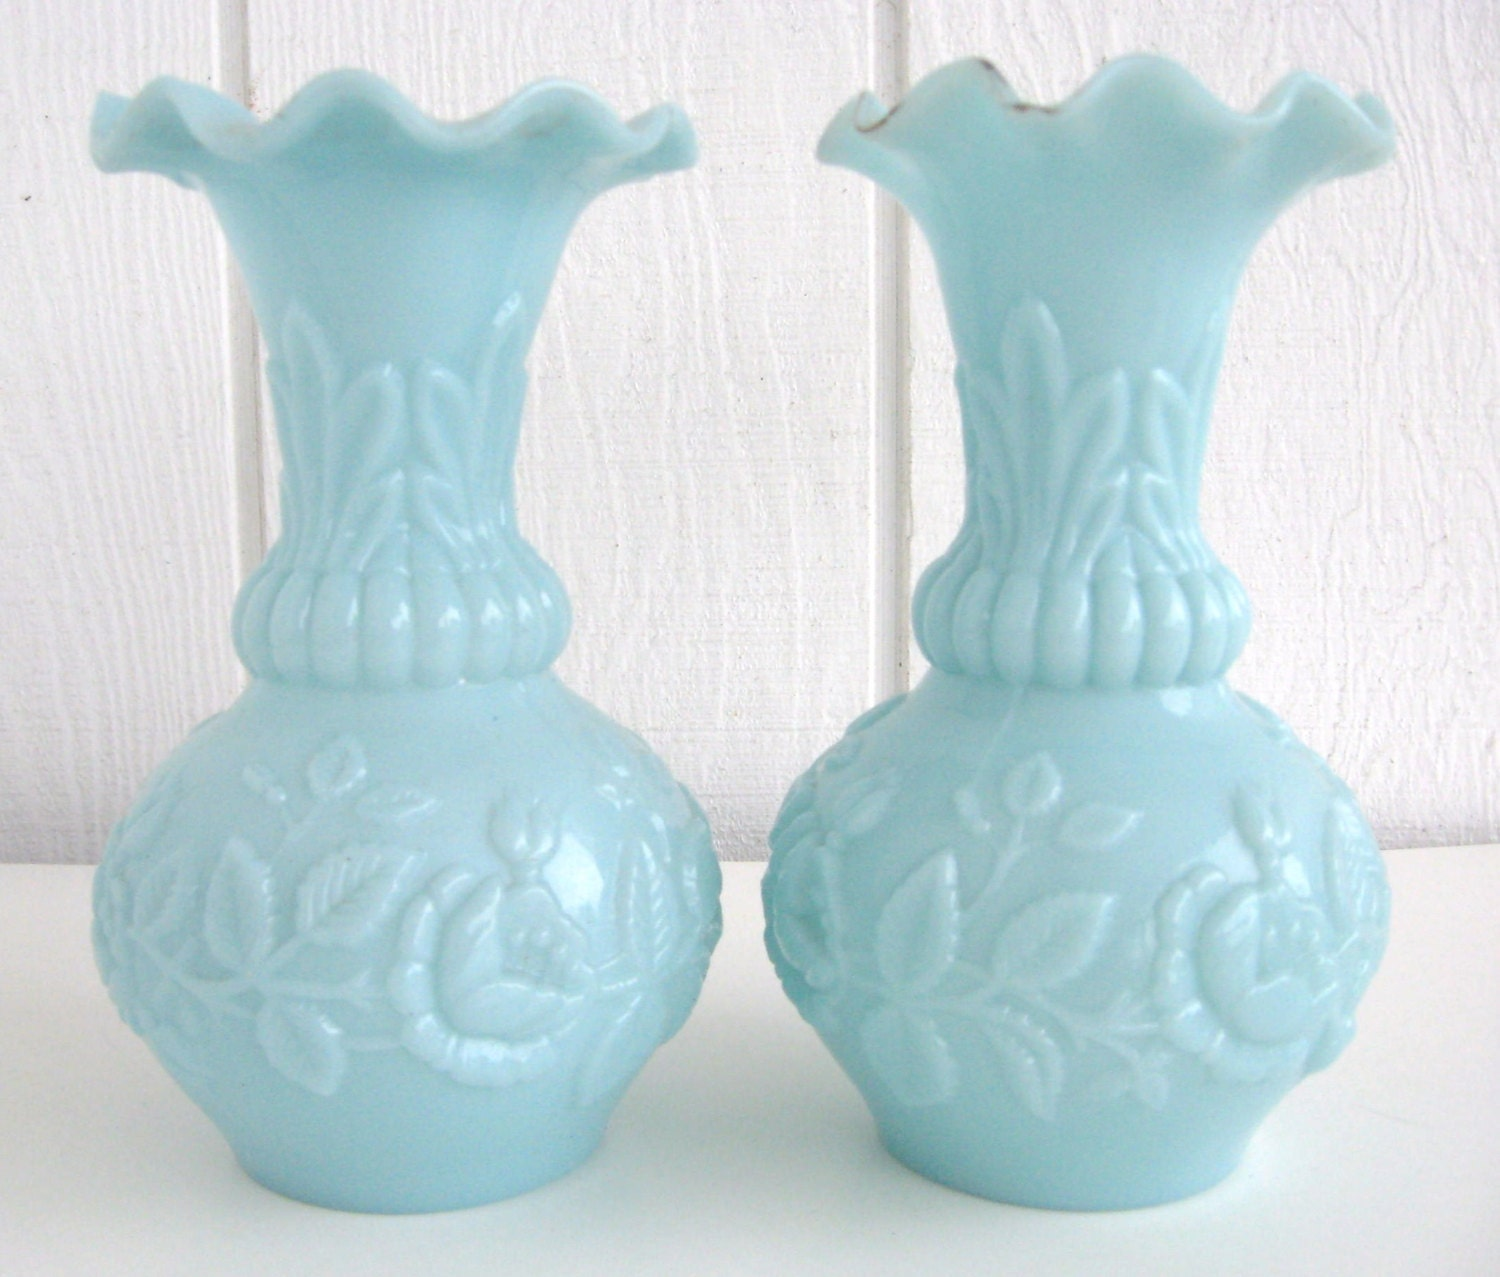 Antique French Portieux Vallerysthal Vases Victorian Blue Milk